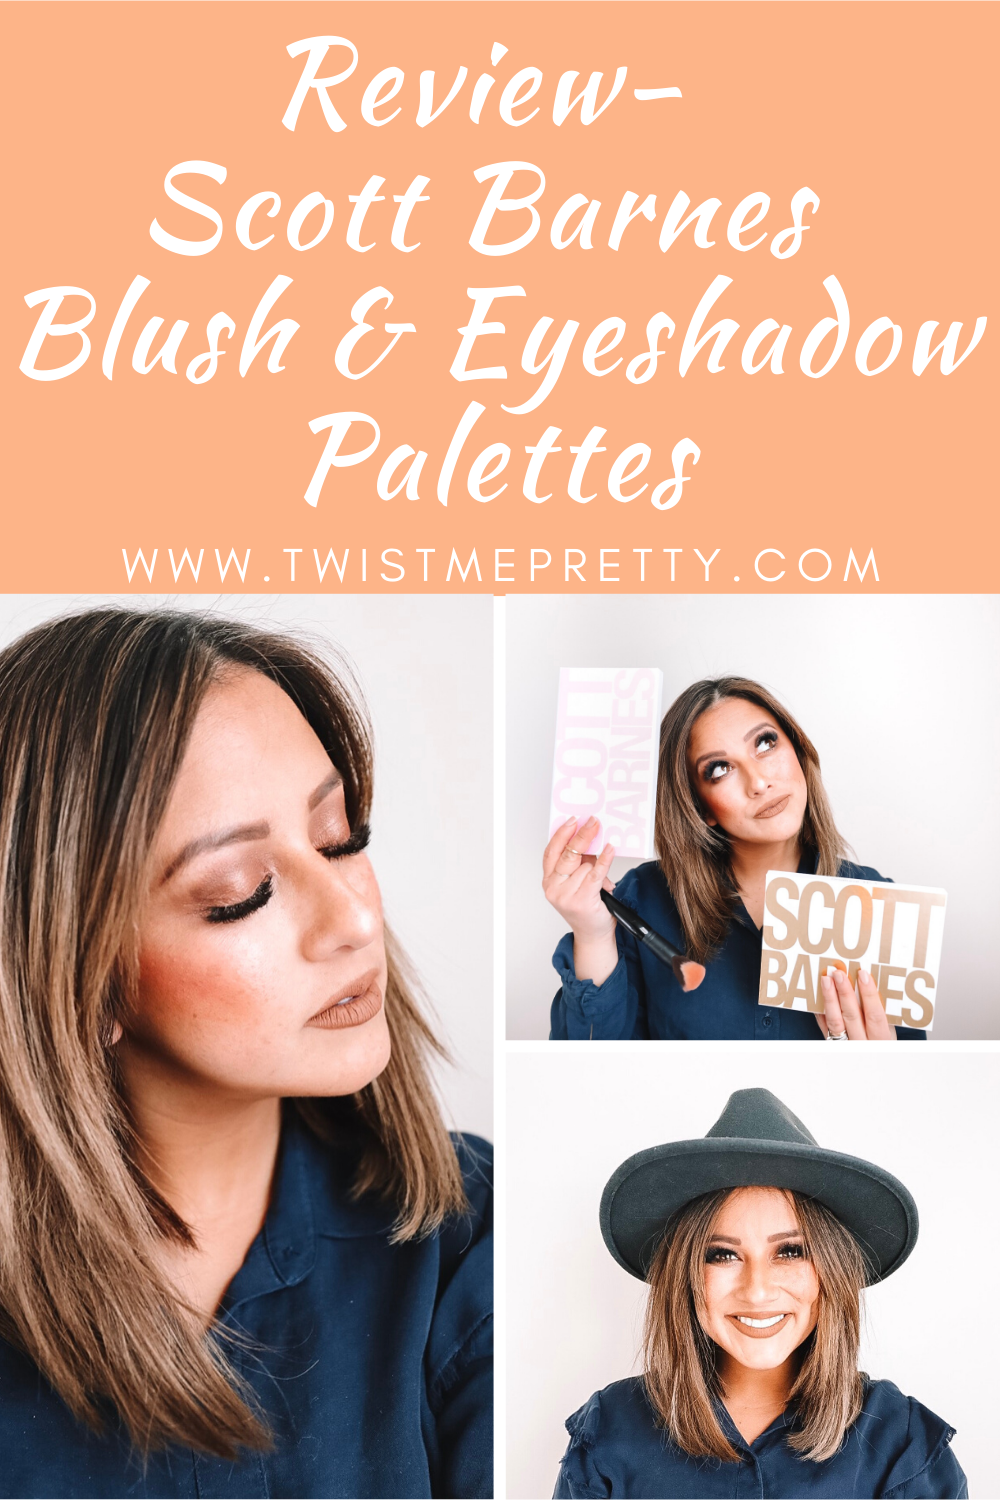 Review- Scott Barnes Blush & Eyeshadow Palettes www.TwistMePretty.com